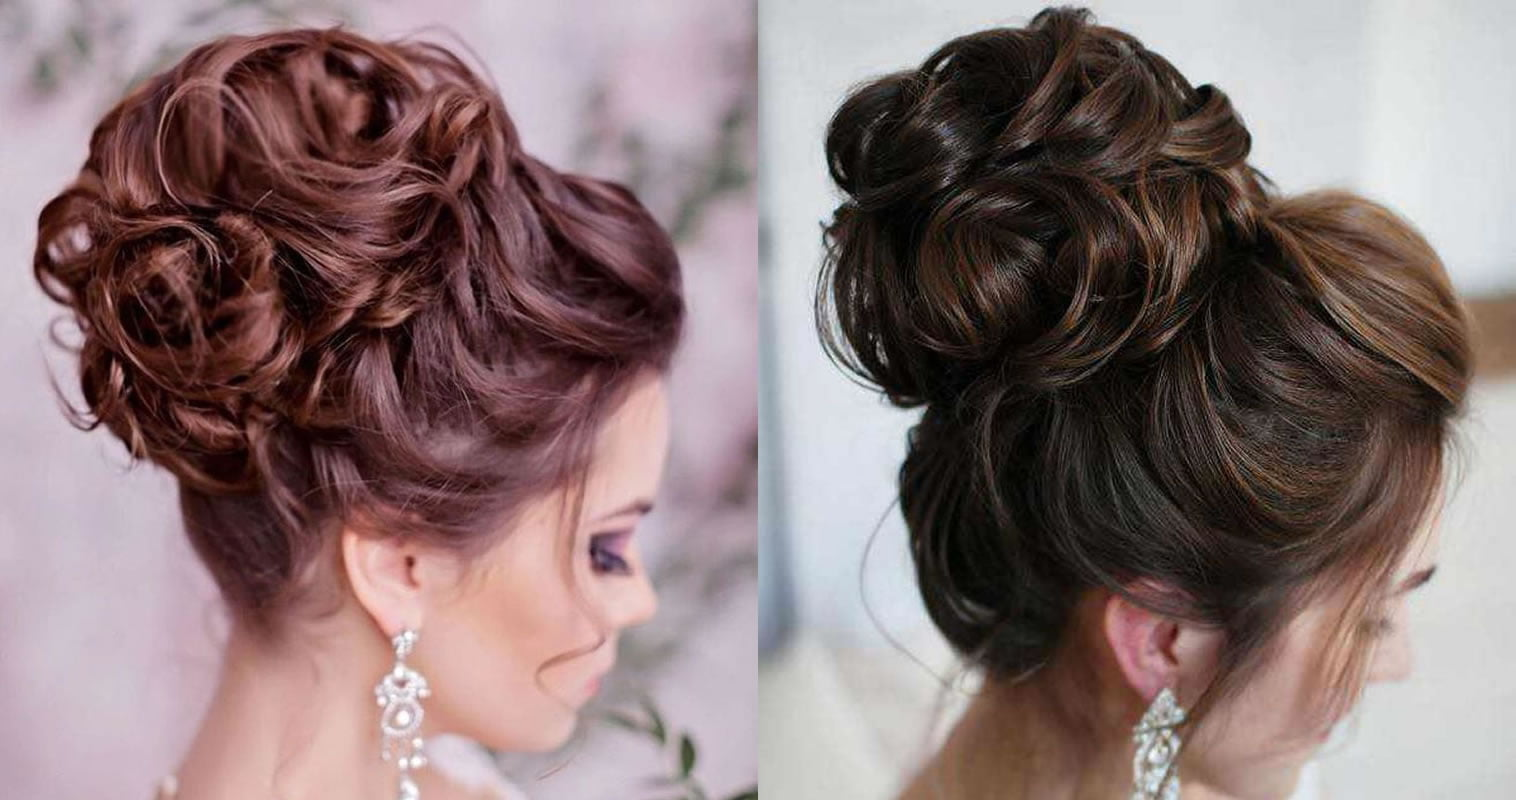 27 Gorgeous Wedding Hairstyles For Long Hair In 2019: Updo Wedding Hairstyles 2019